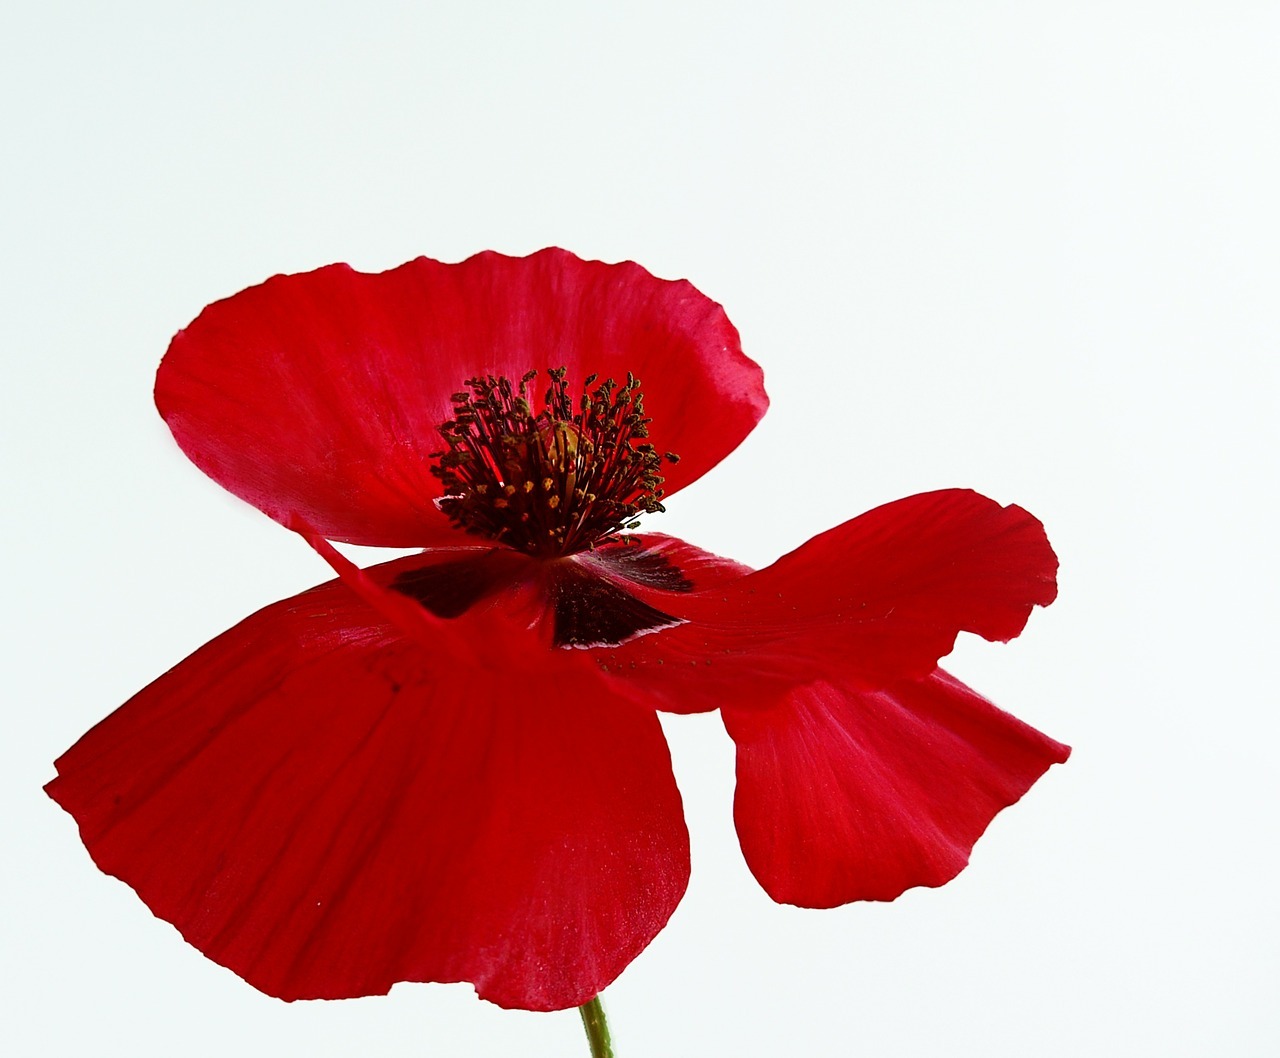 poppy flower blossom free photo